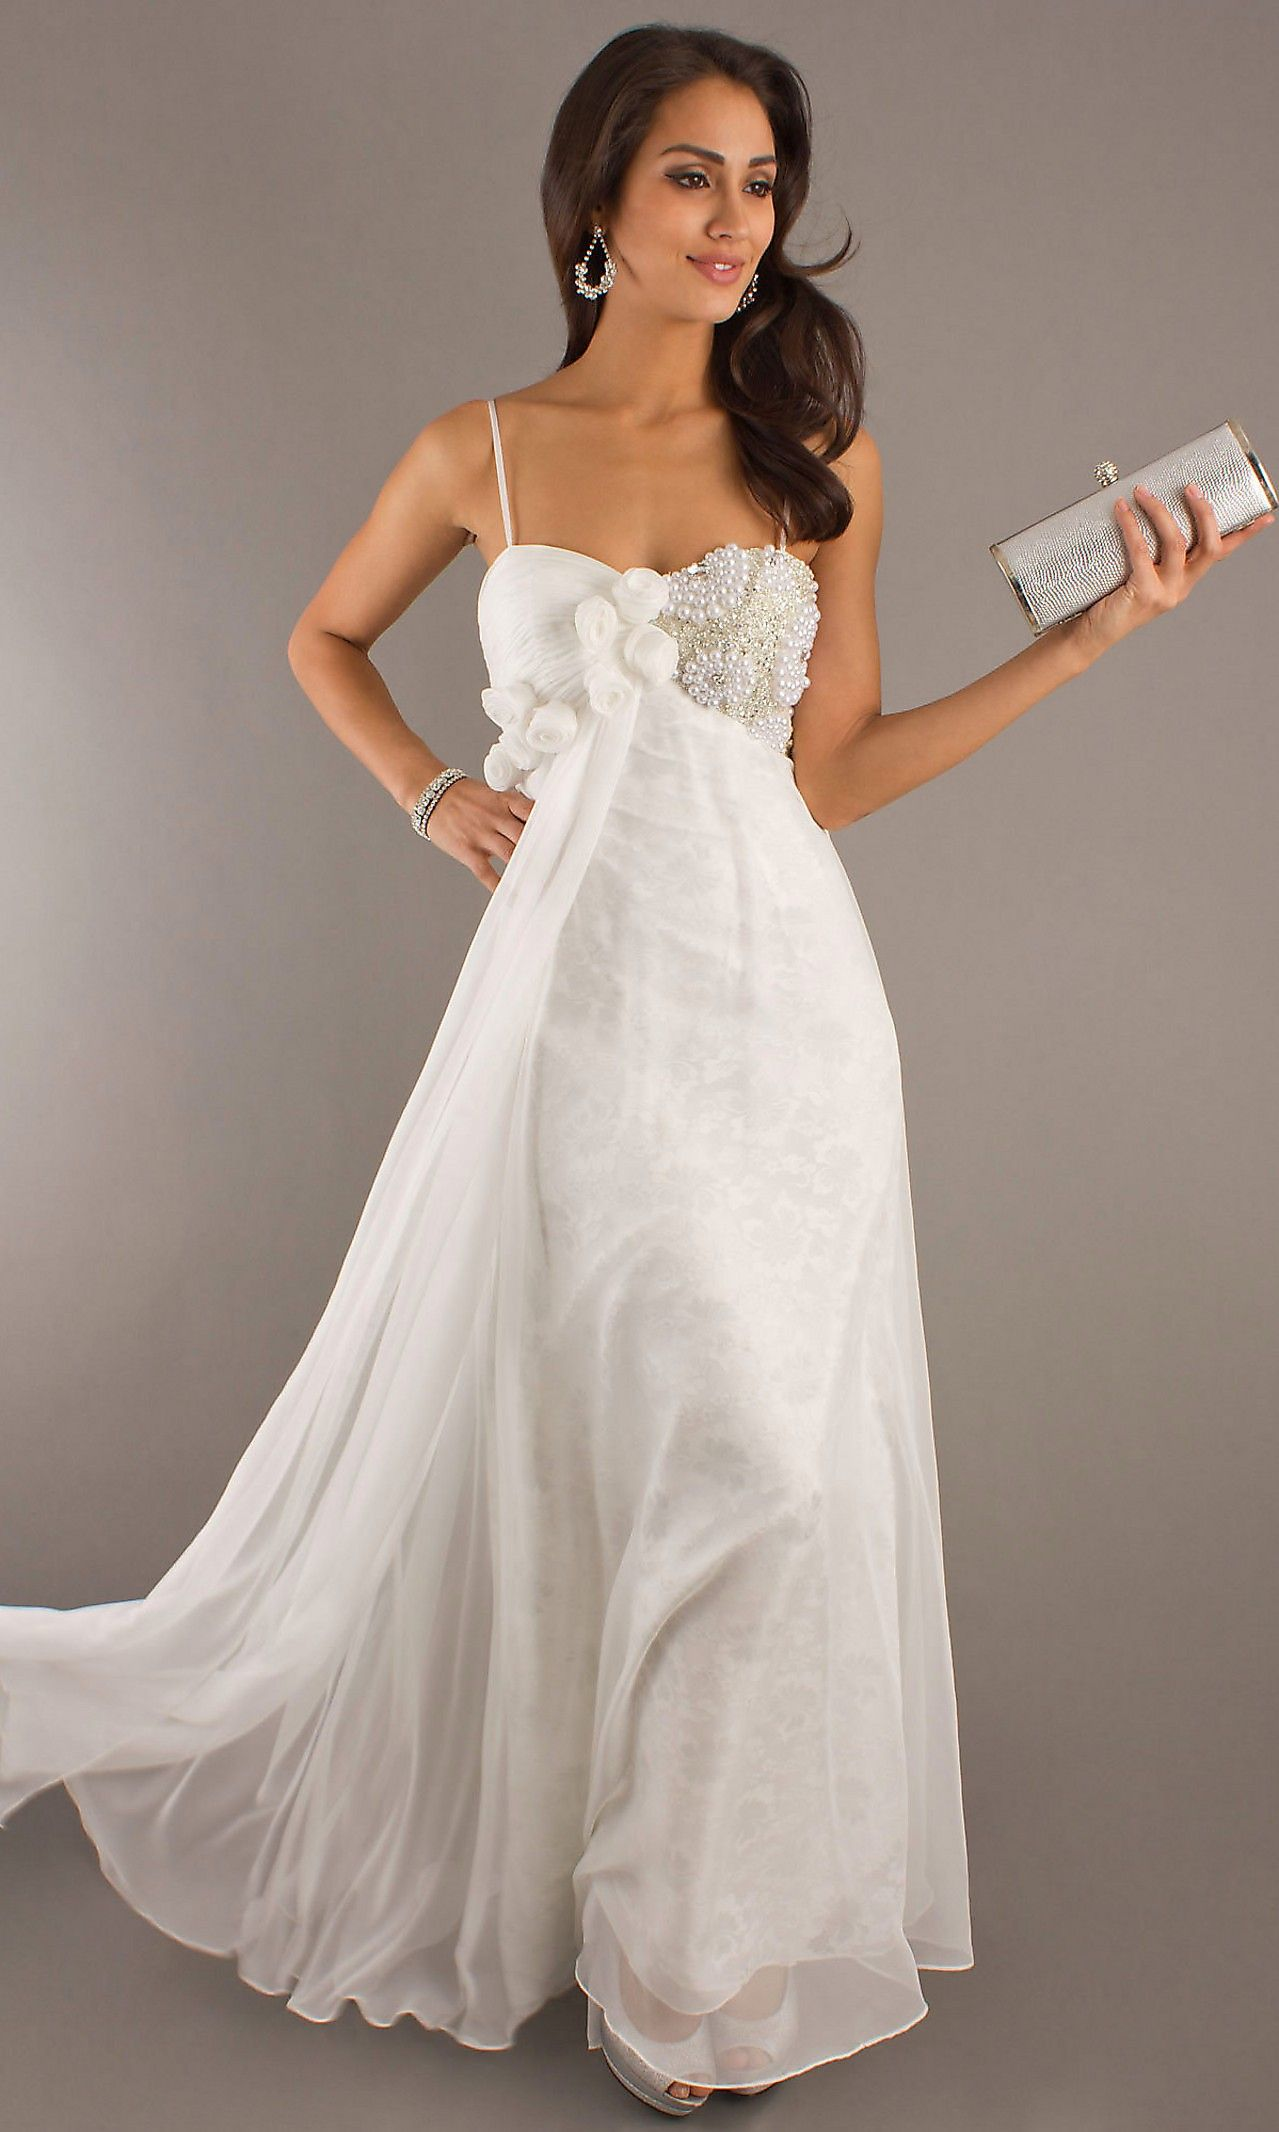 How much to alter wedding dress  Wedding Dress Alterations Nyc weddingprinter